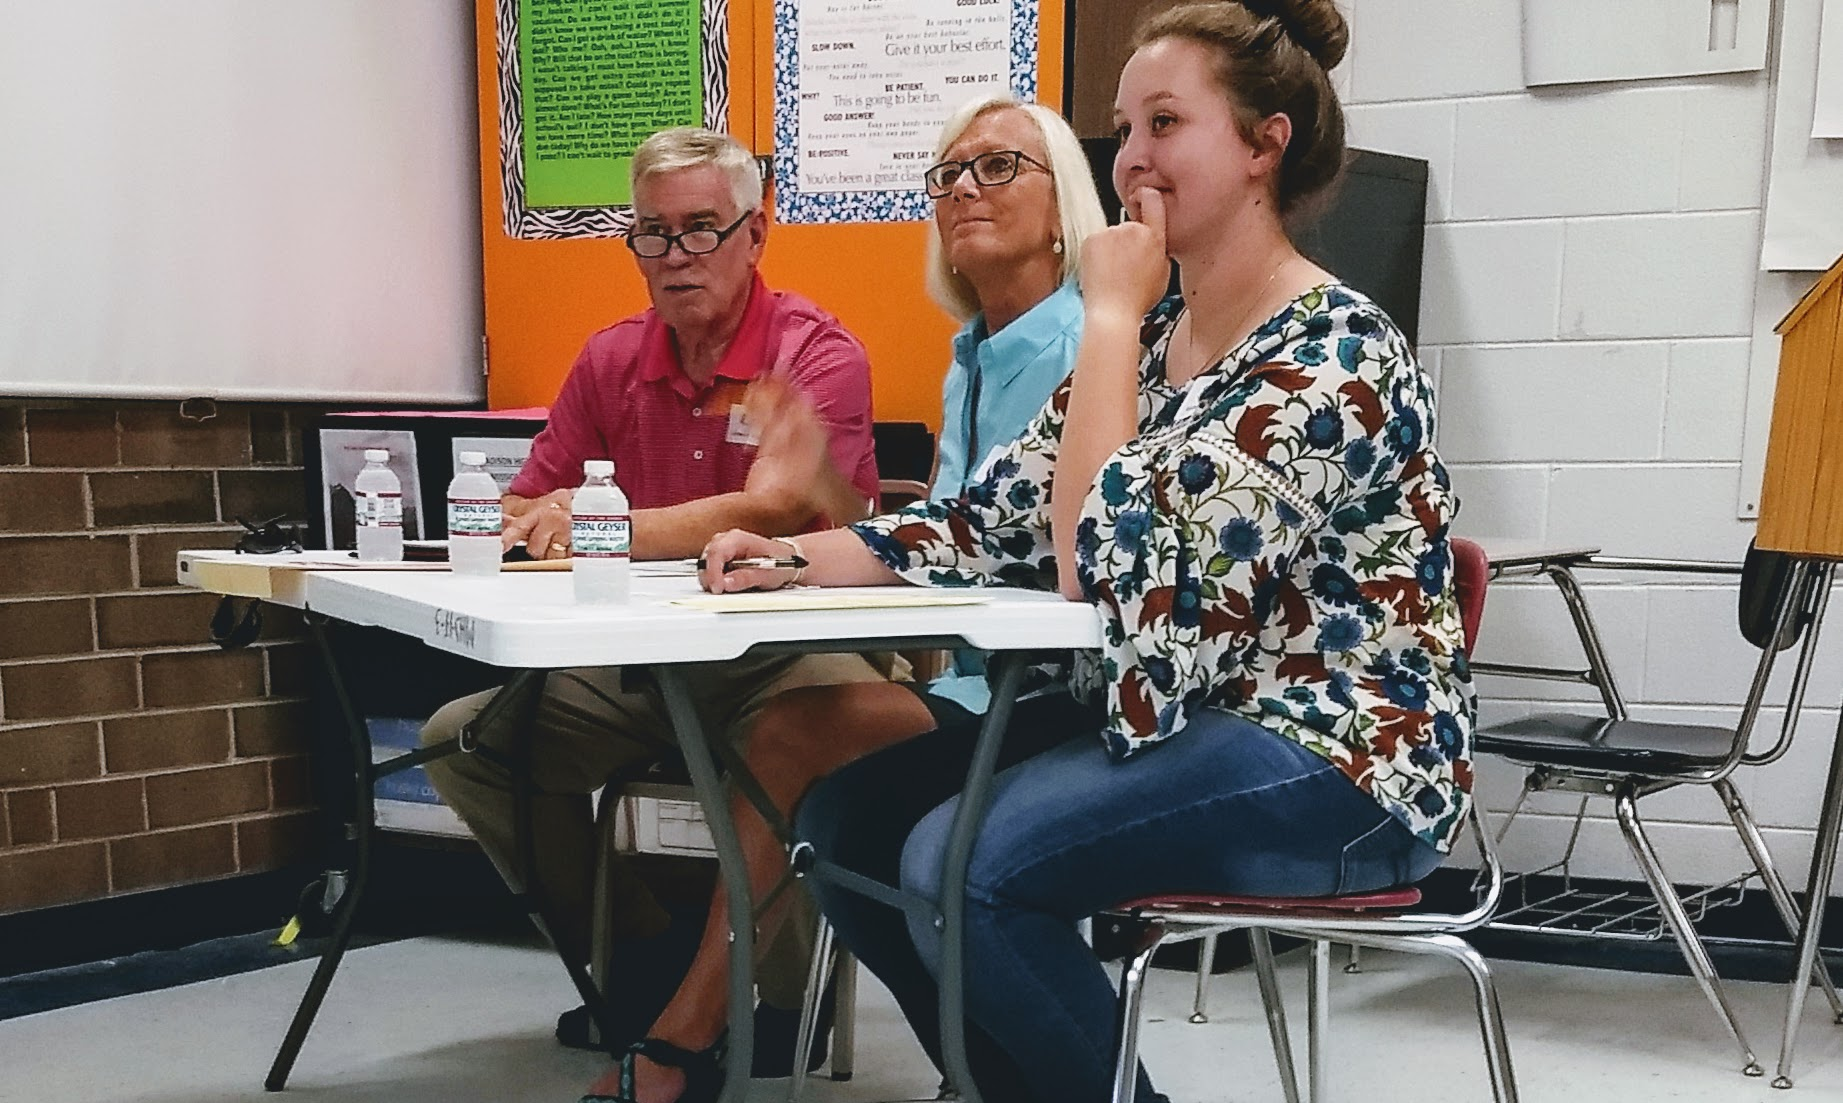 From left to right, Charles Beck, Jackie Nagy and Savannah Sartin judge a local 4-H contest. There are short-term and long-term roles for adults interested in volunteering and supporting youth development.